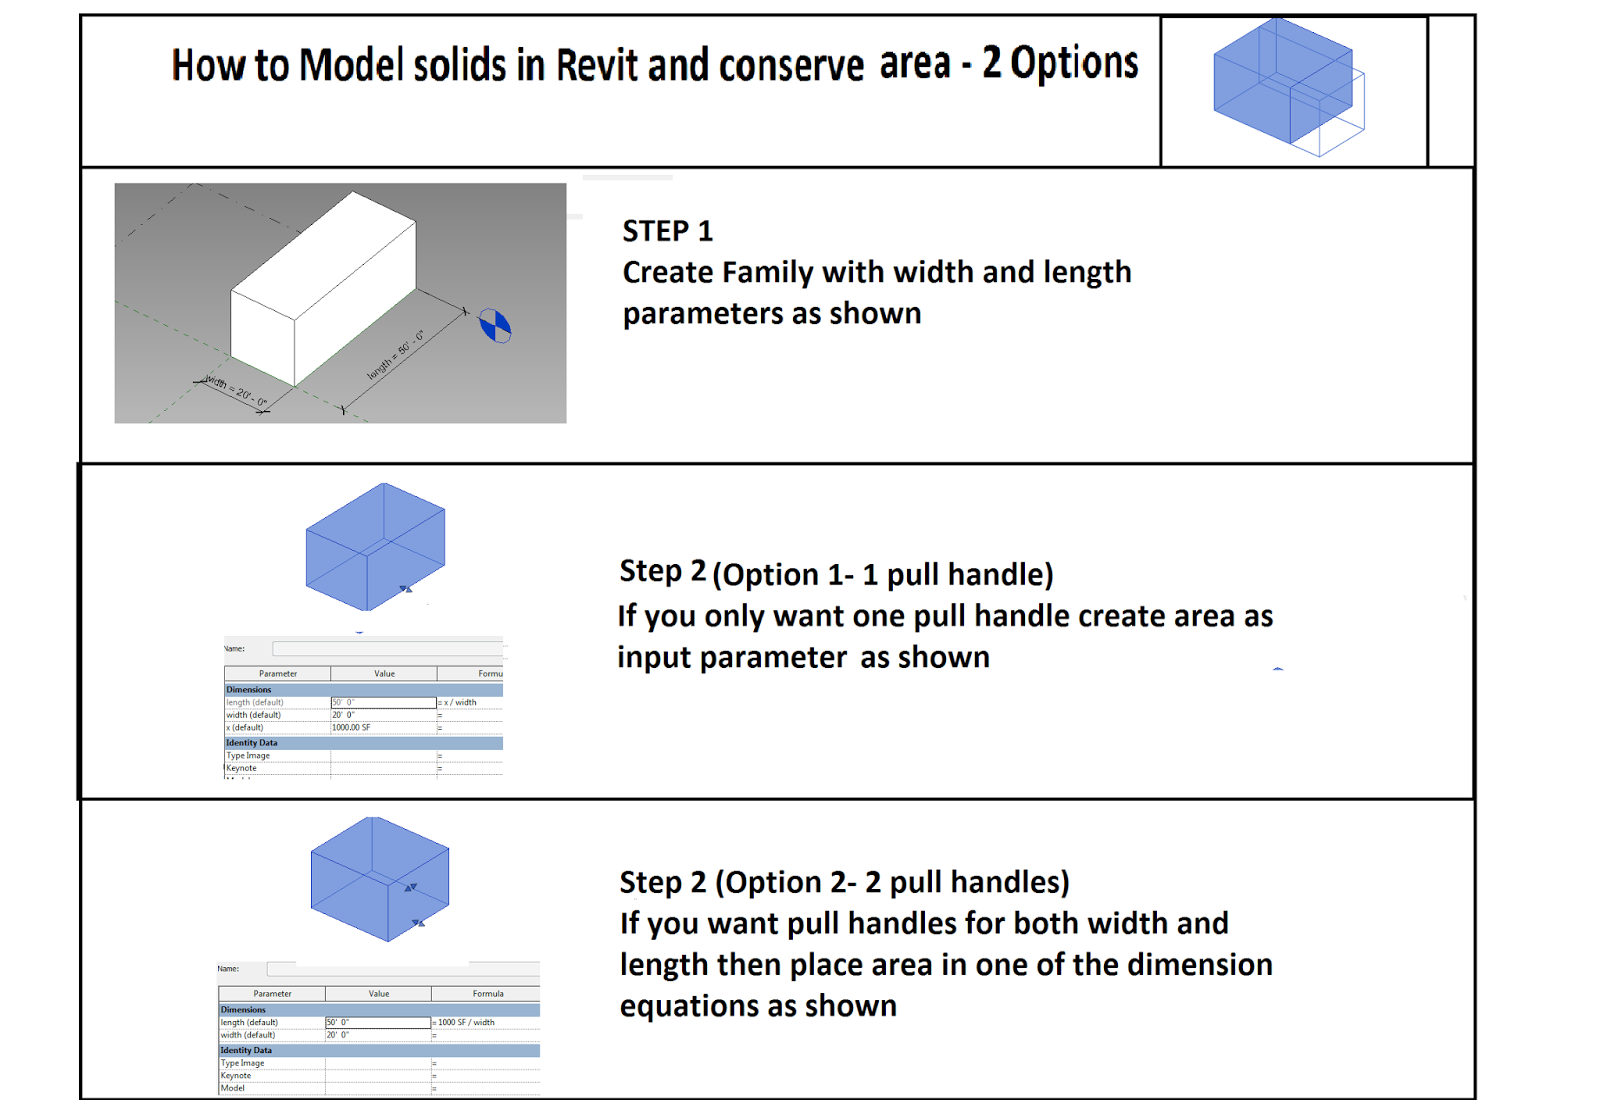 How to Model Solid in Revit and conserve area when changing dimensions